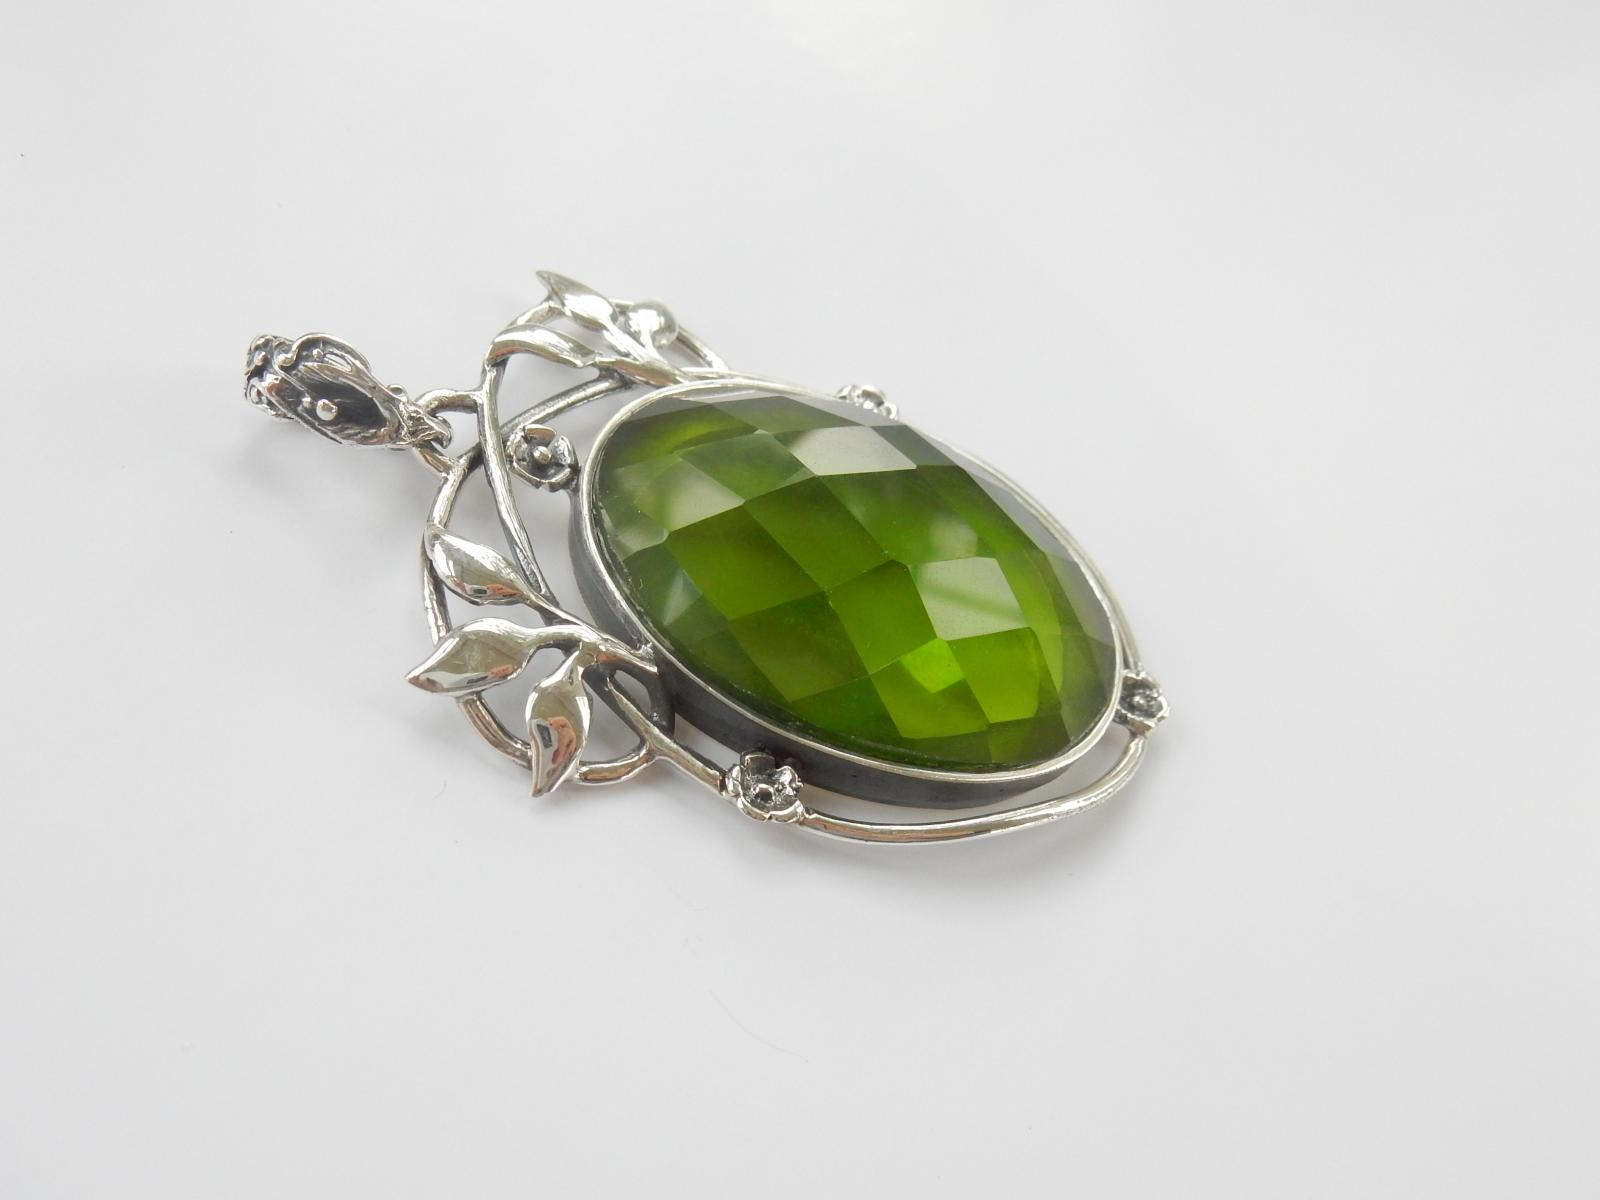 Photo of Large Silver Vine Leaf Green Paste Pendant